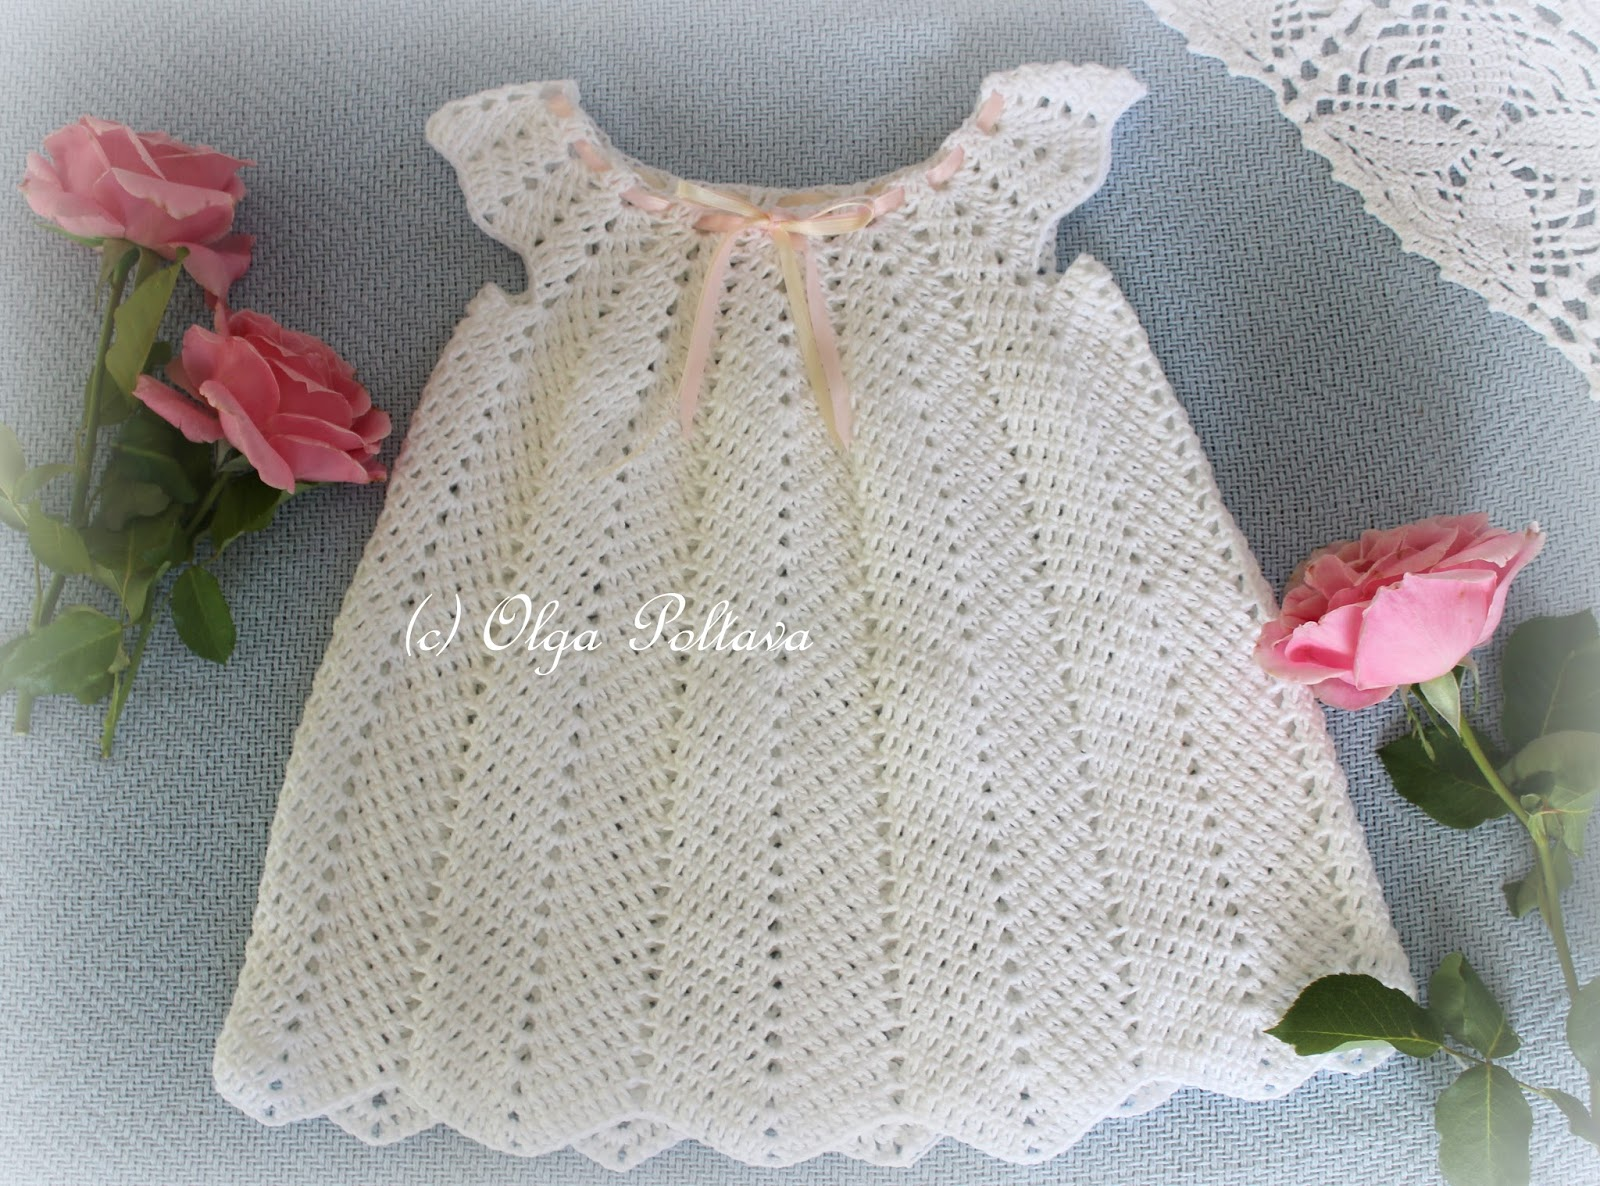 Lacy Crochet: June 2016